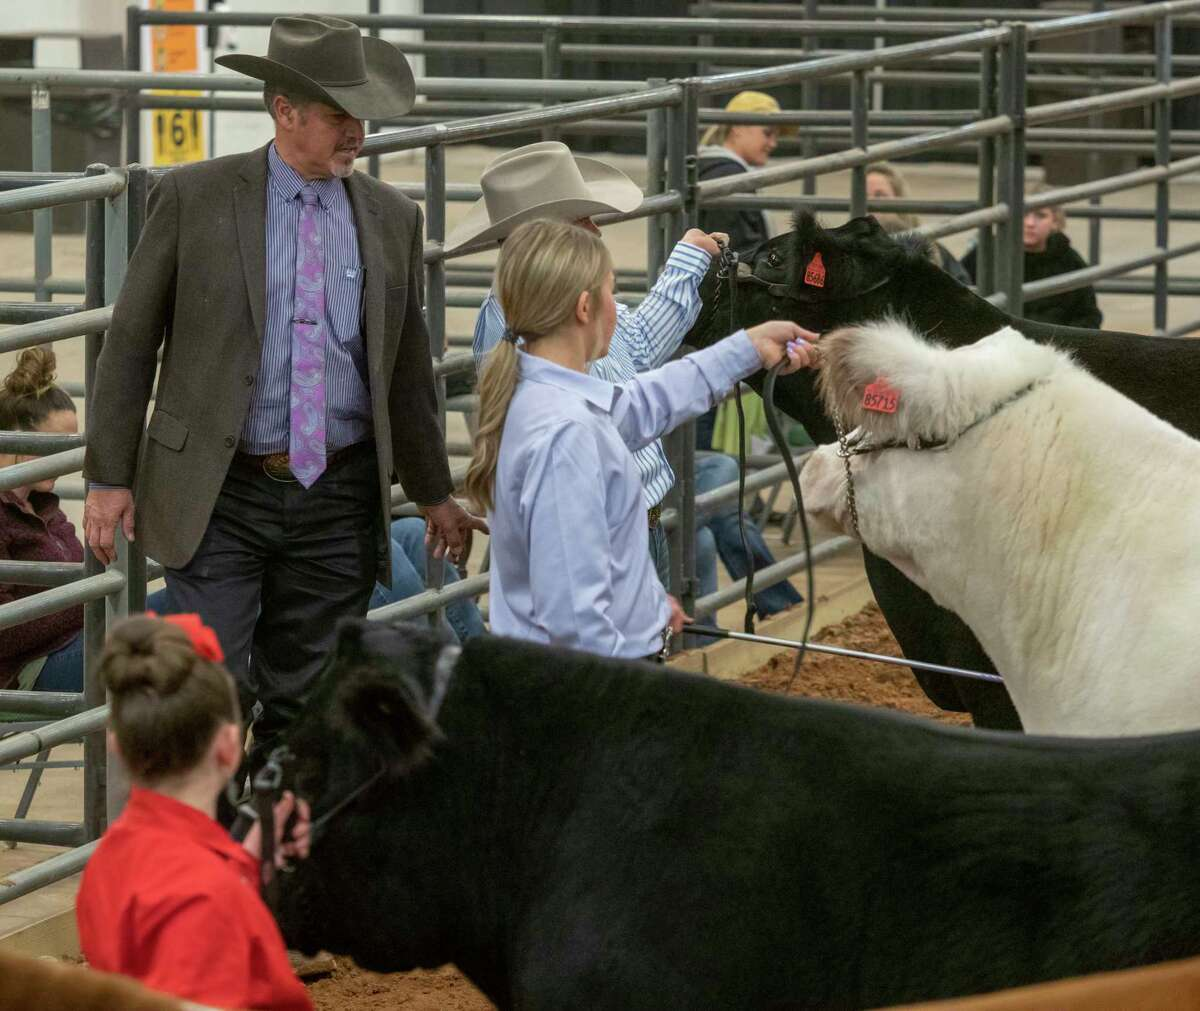 Judge Joel Judge looks over steers 01/15/2021 at the Midland County Horseshoe Arena during the 2021 Midland County Livestock Association Show. Tim Fischer/Reporter-Telegram